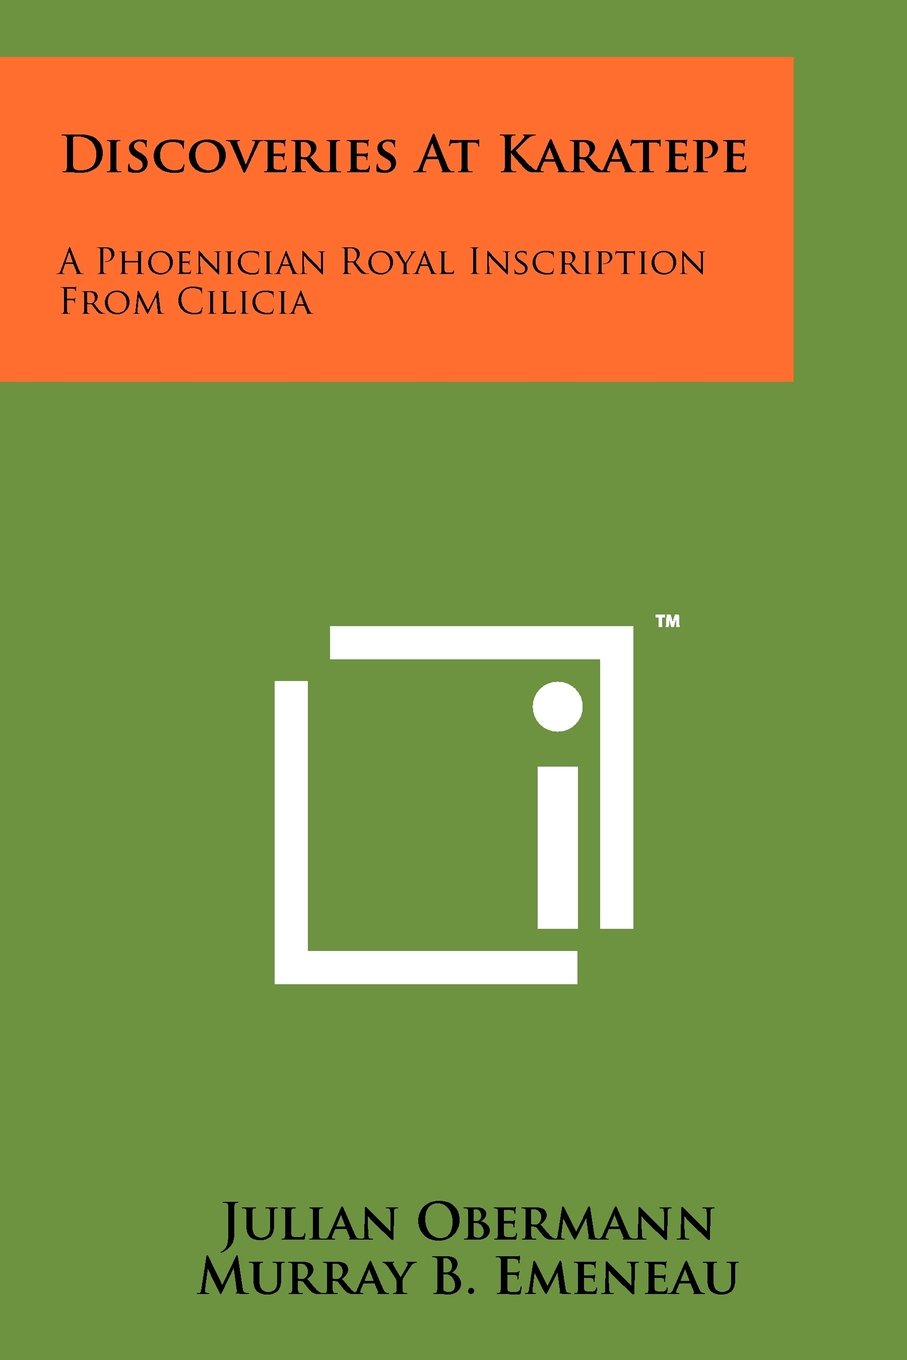 Download Discoveries At Karatepe: A Phoenician Royal Inscription From Cilicia pdf epub